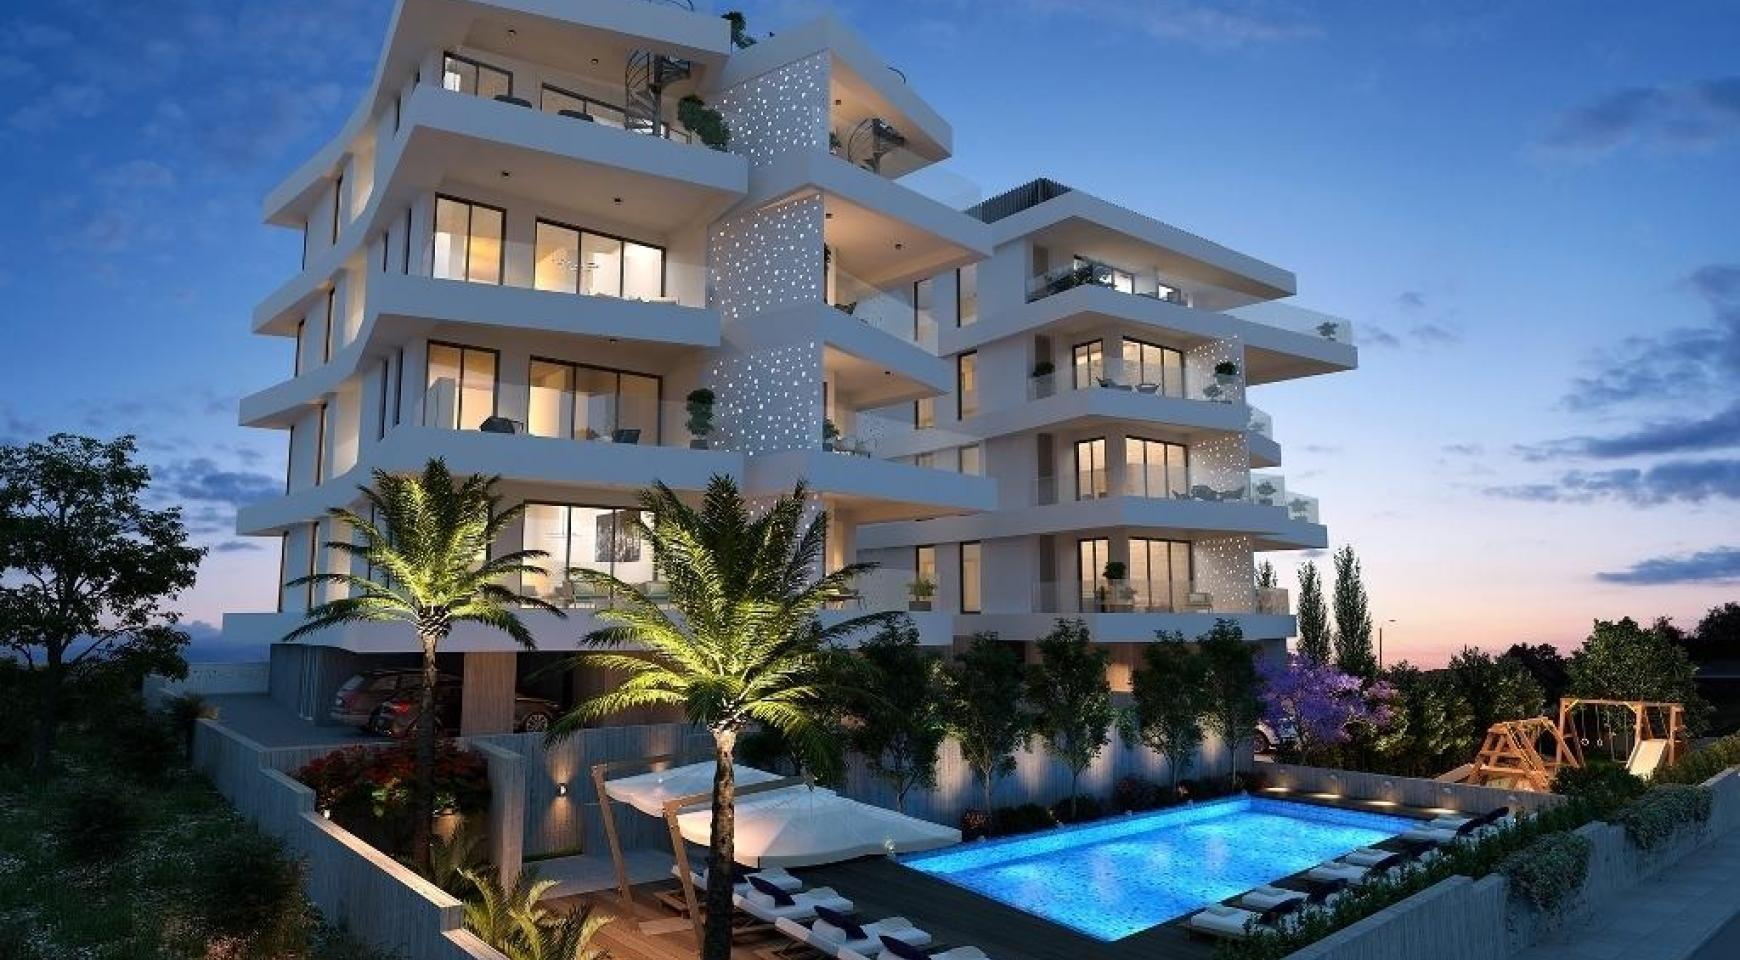 New 2 Bedroom Penthouse in a Contemporary Complex in Germasogeia - 1